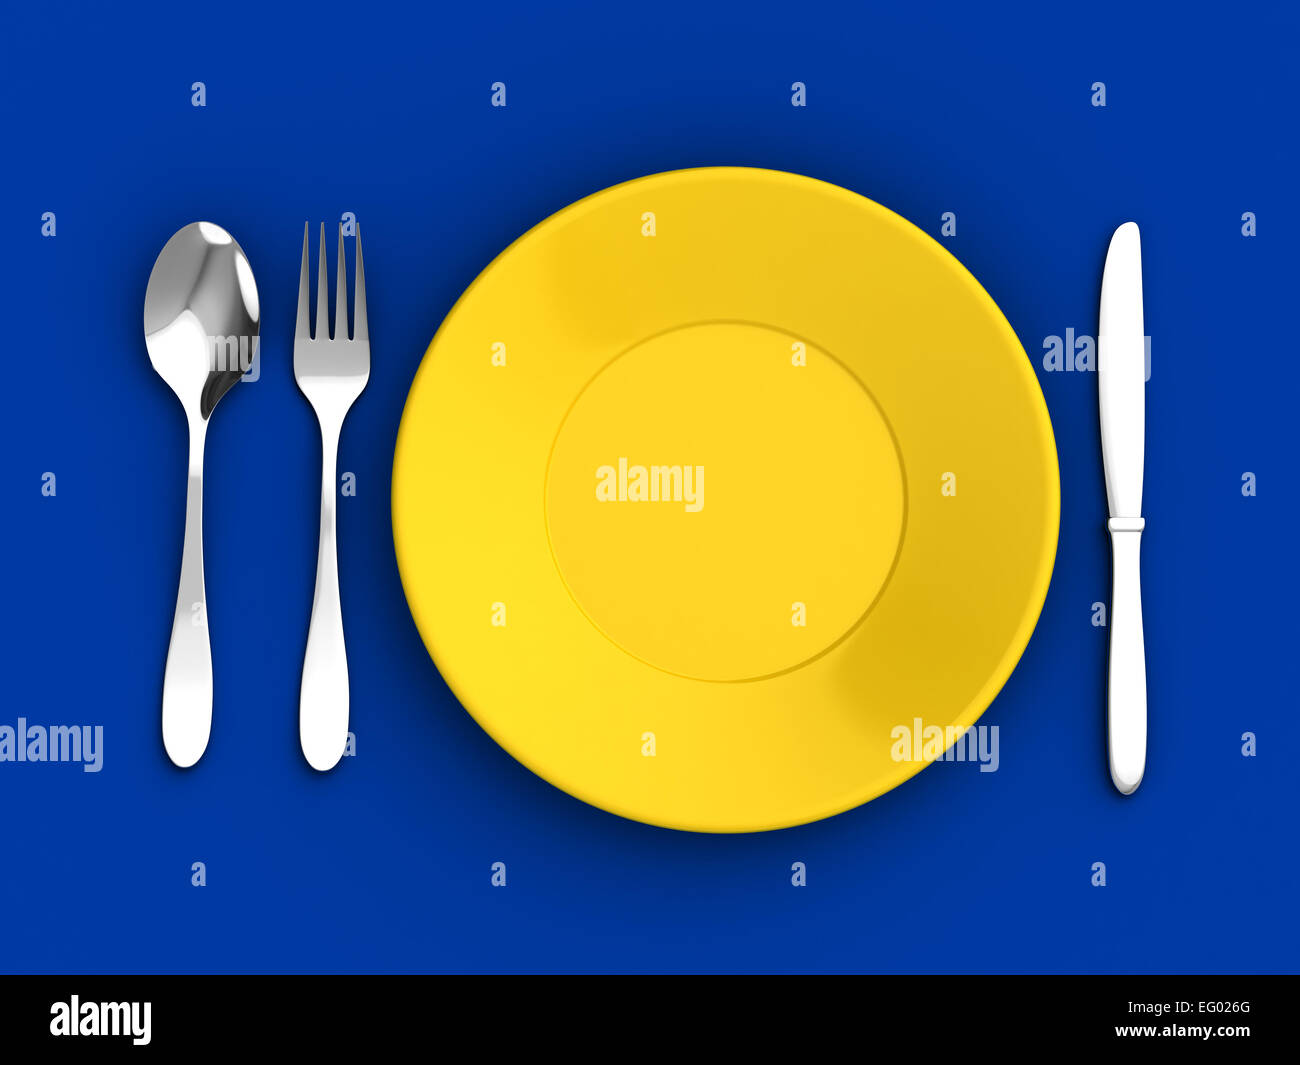 3d render of knife, spoon, fork and yellow plate over blue background - Stock Image